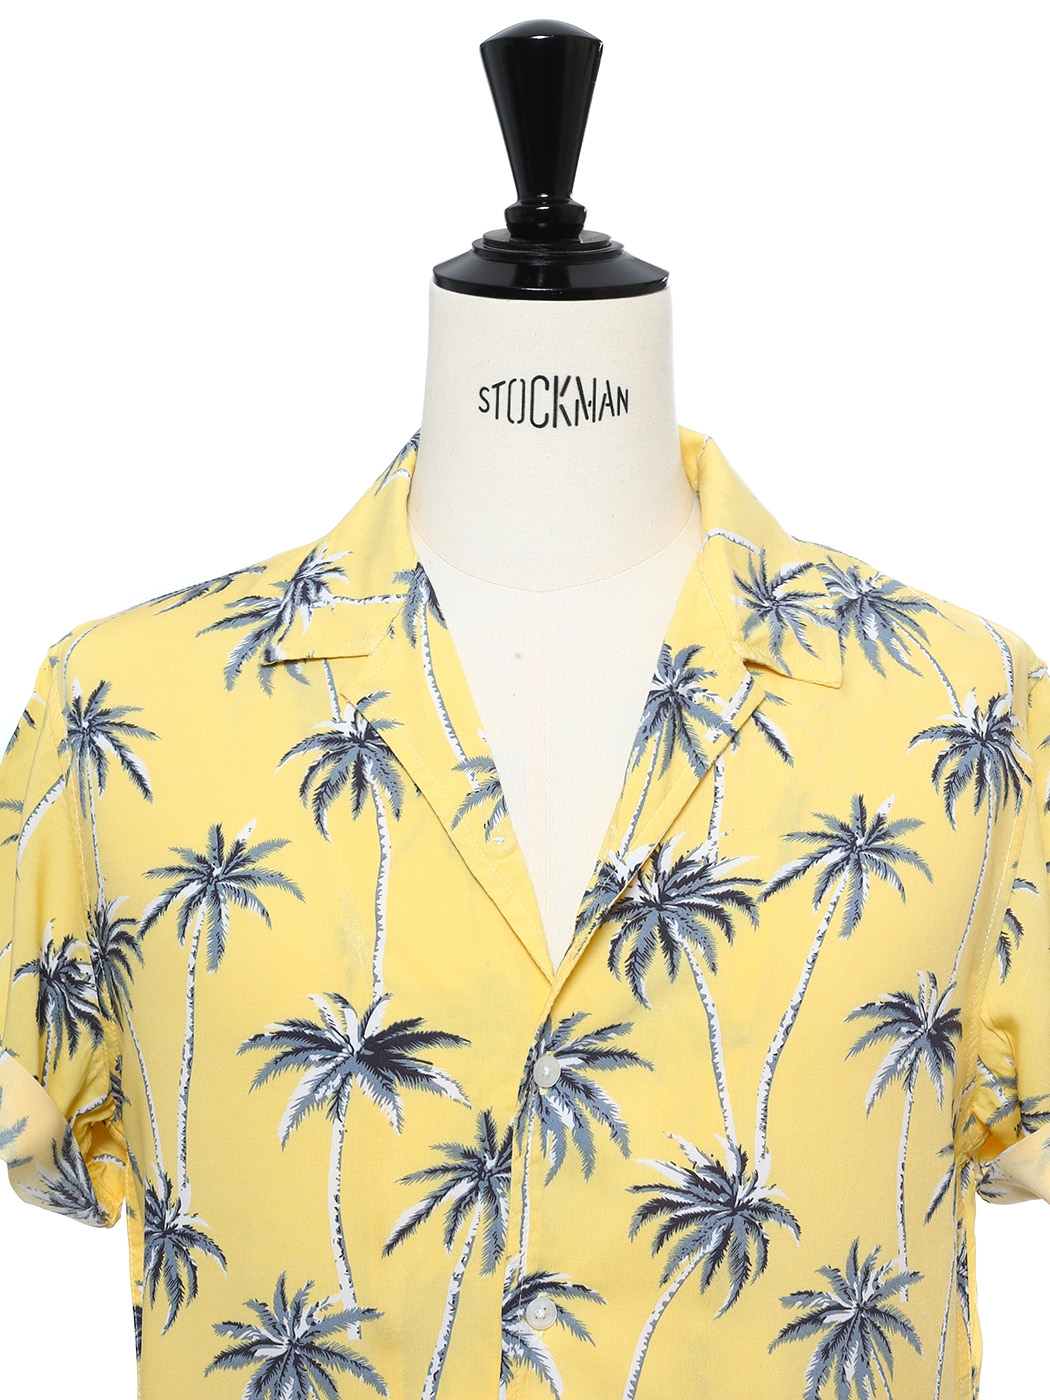 d5812678 ... Yellow cotton printed with blue palm trees short sleeved Hawaiian shirt  Size M ...